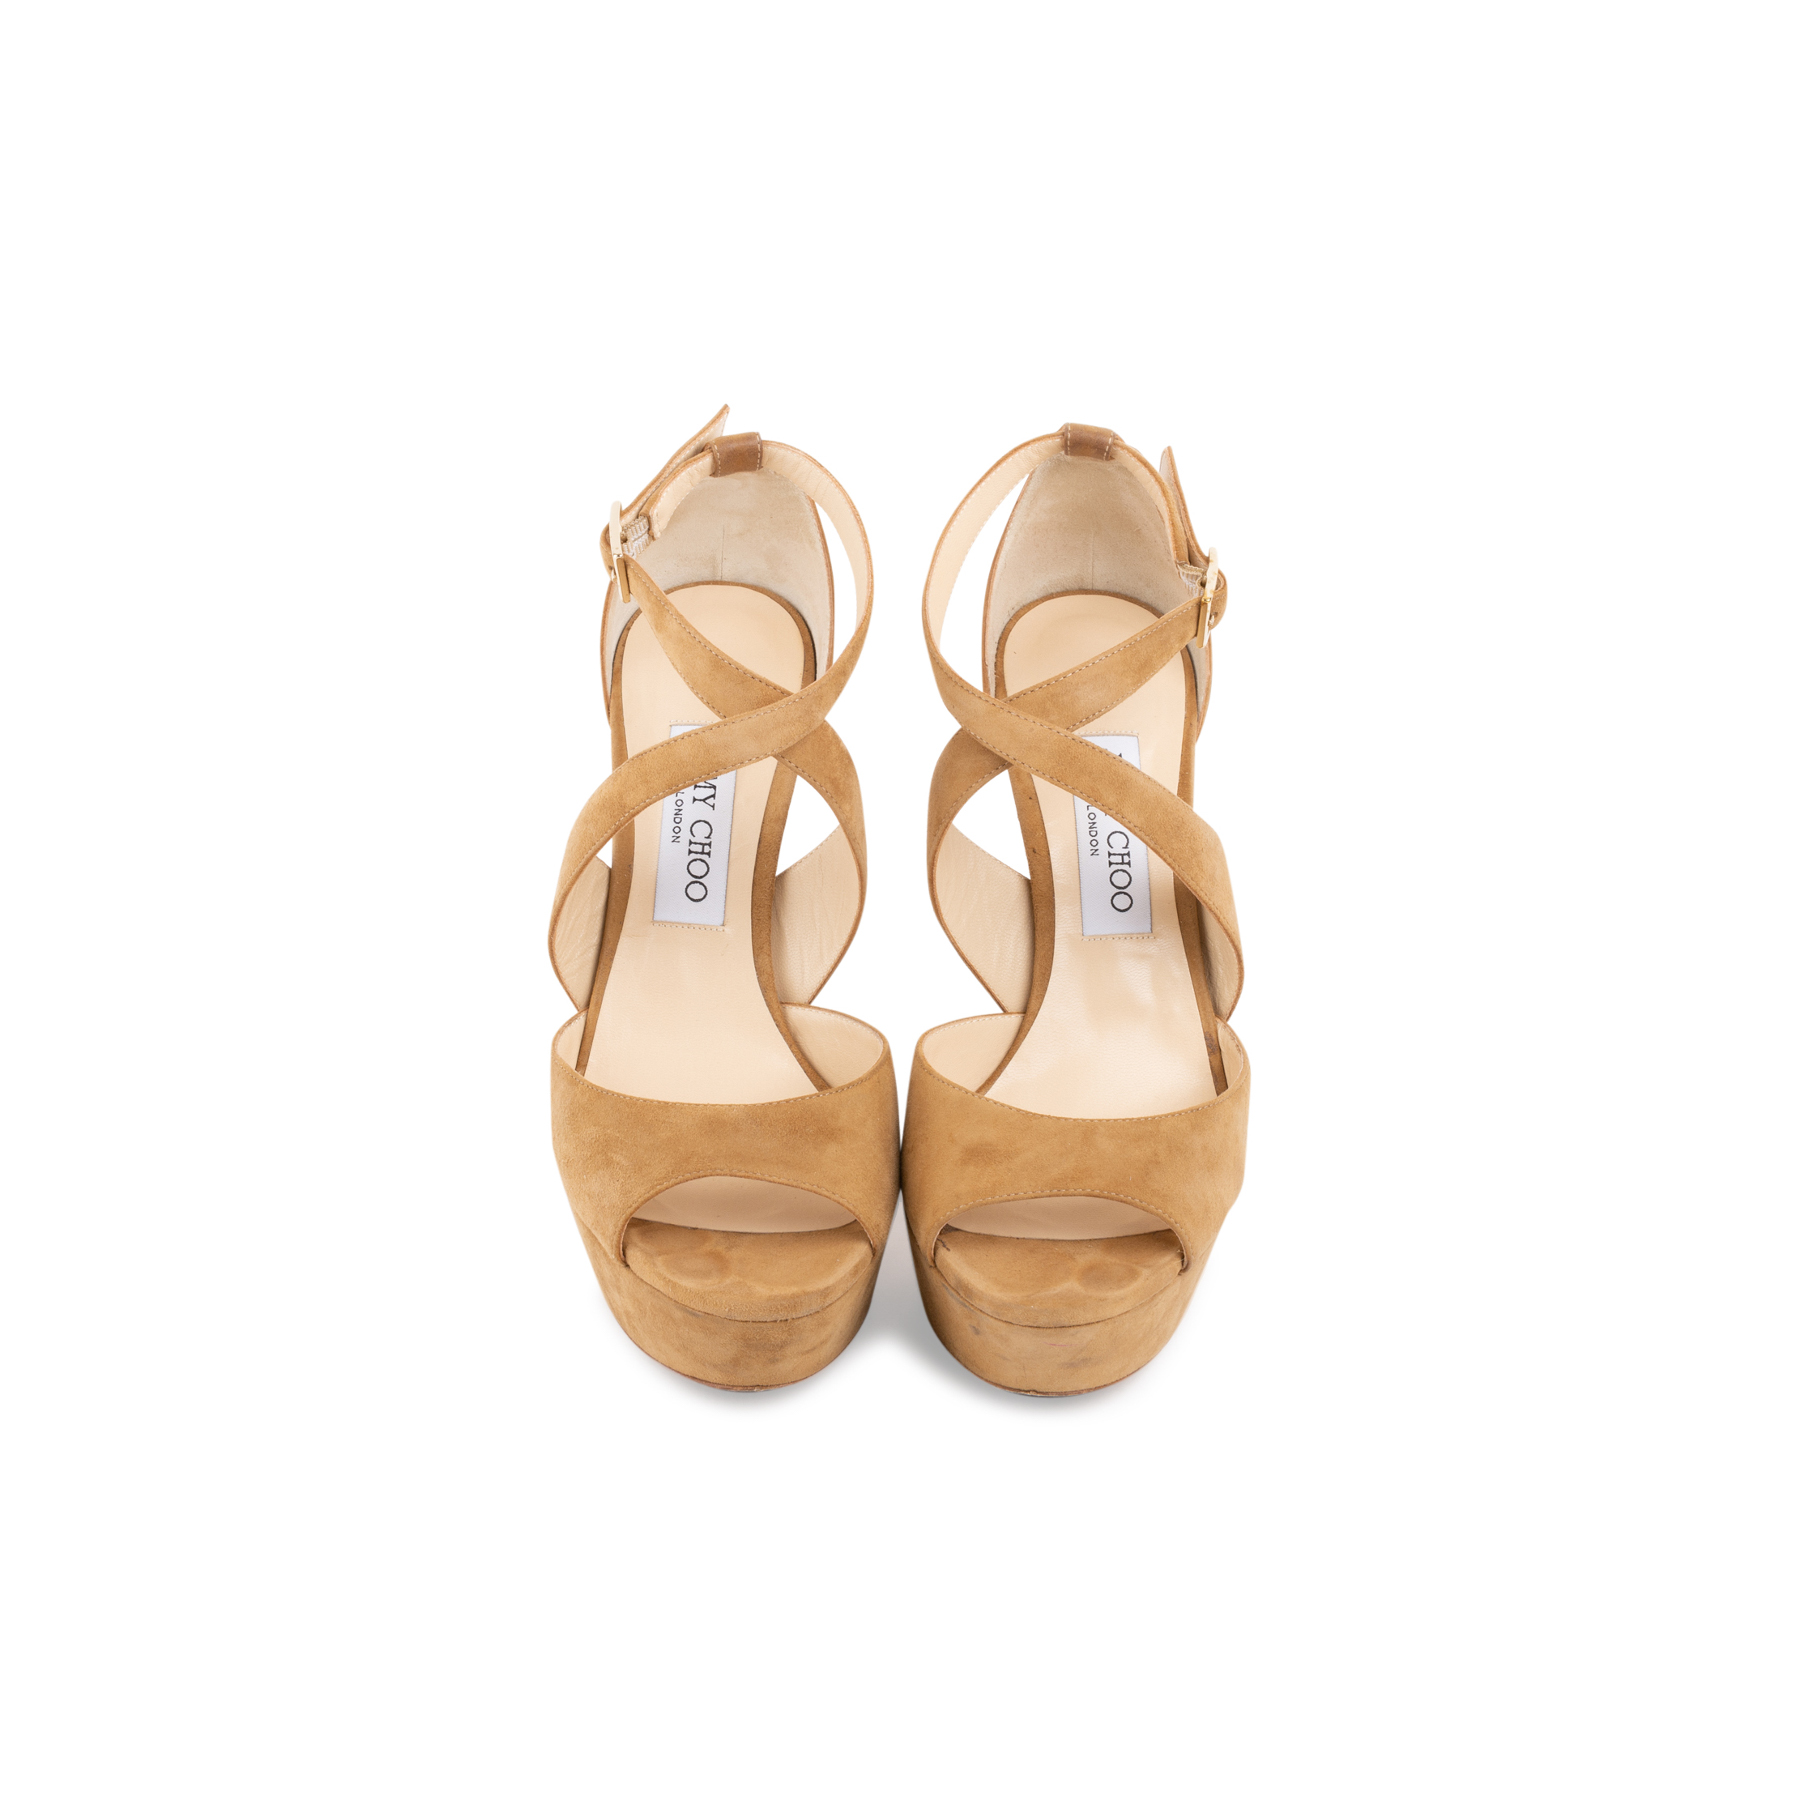 94a0a4e127fd6 Authentic Second Hand Jimmy Choo April Suede Crisscross Sandals  (PSS-097-00199) - THE FIFTH COLLECTION